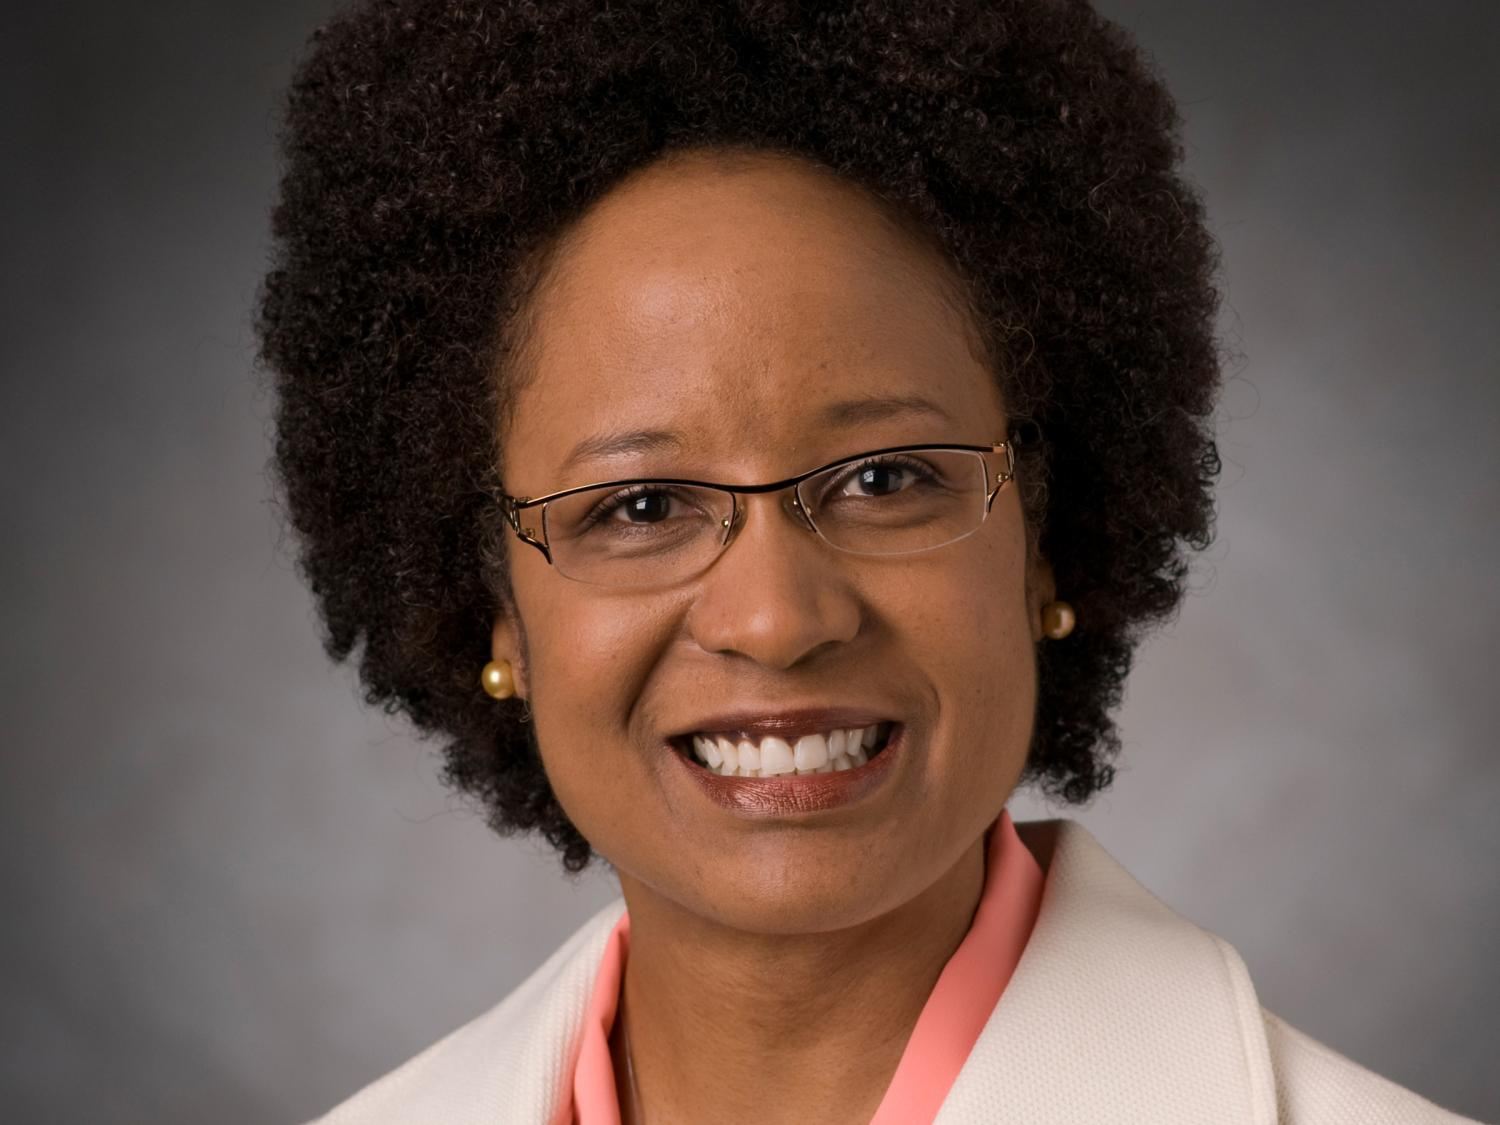 Harriet B. Nembhard, professor of industrial engineering and director of the Center for Integrated Healthcare Delivery Systems